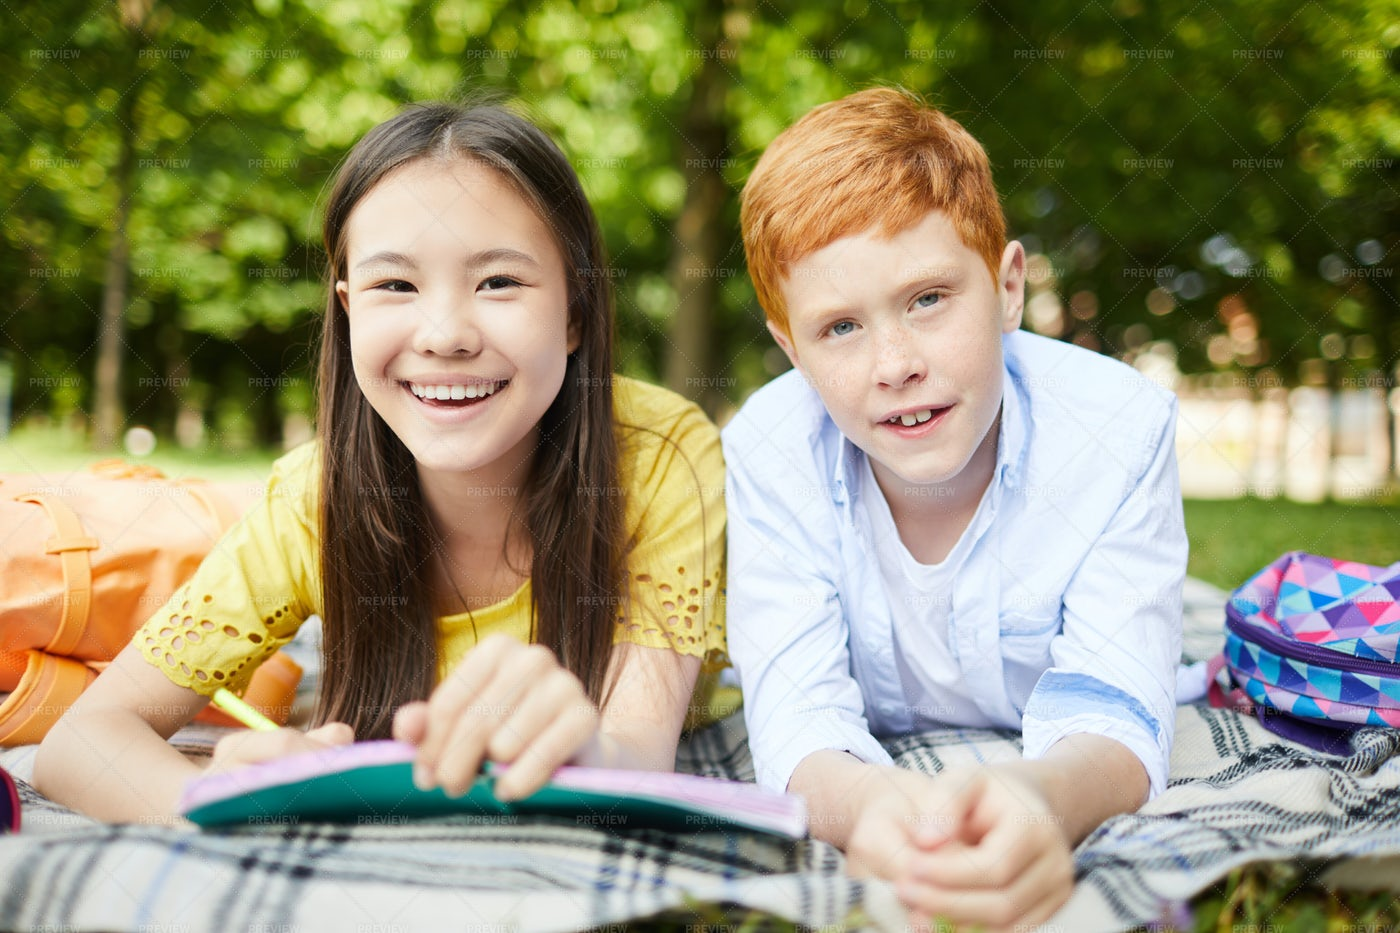 Smiling Kids In Park: Stock Photos